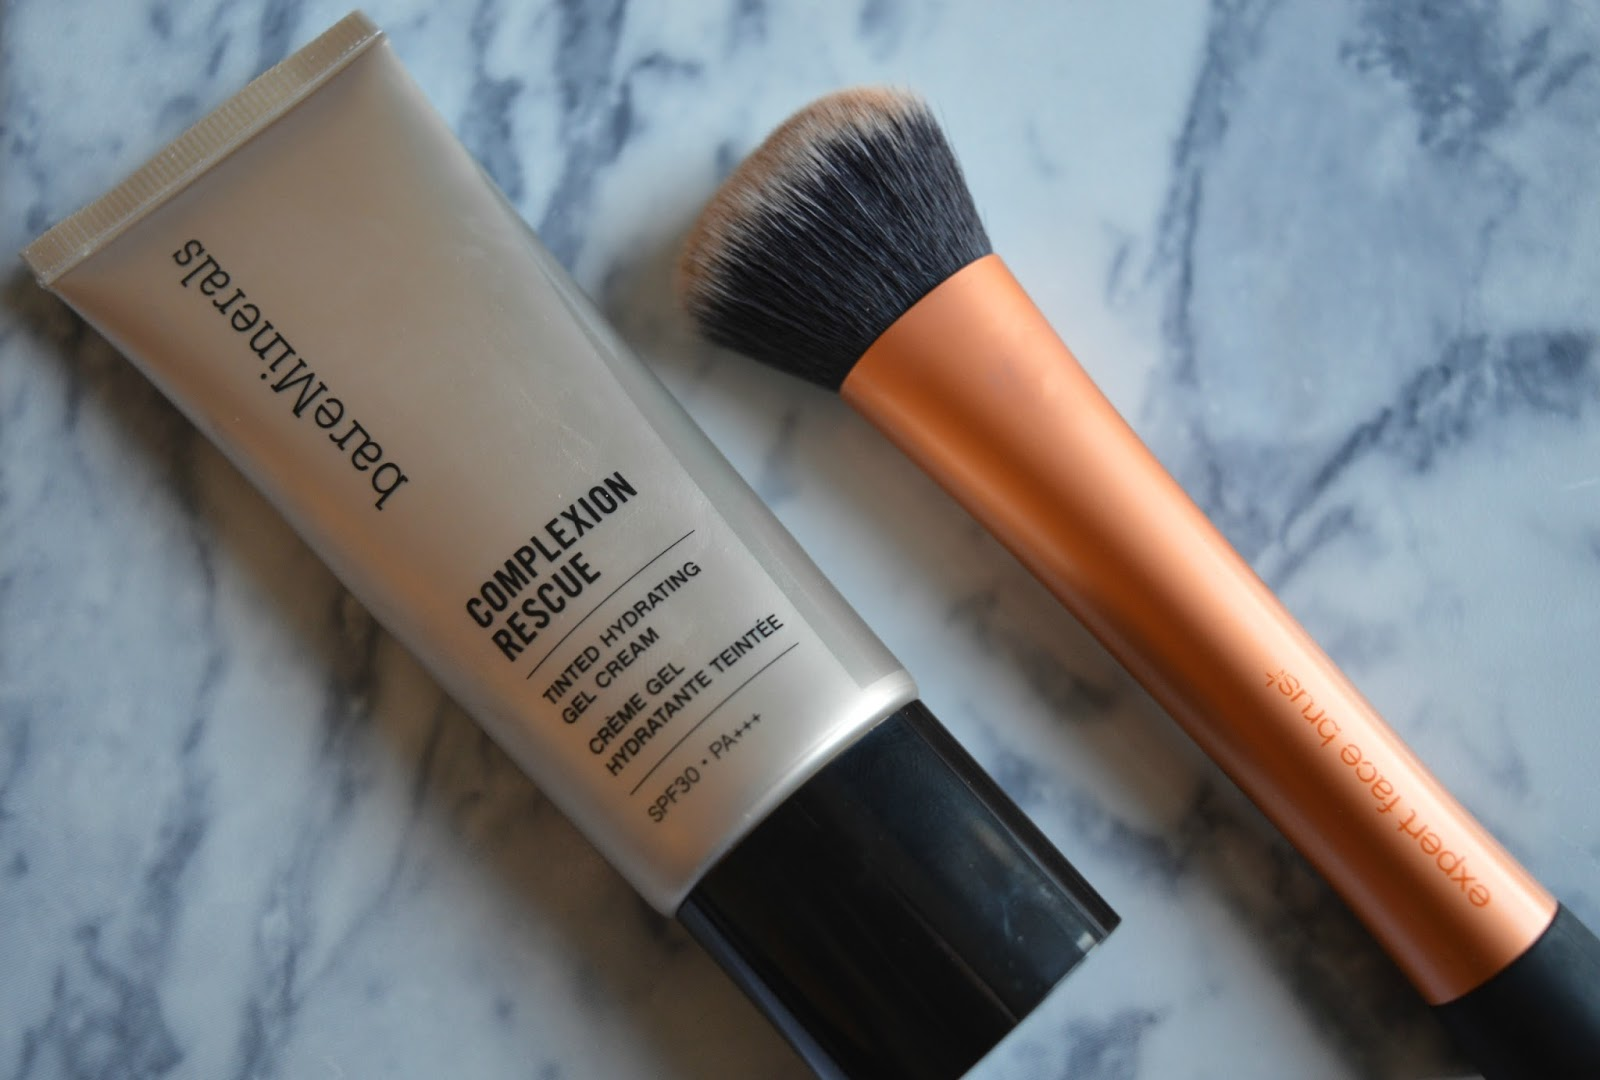 BareMinerals Complexion Rescue   Who is She